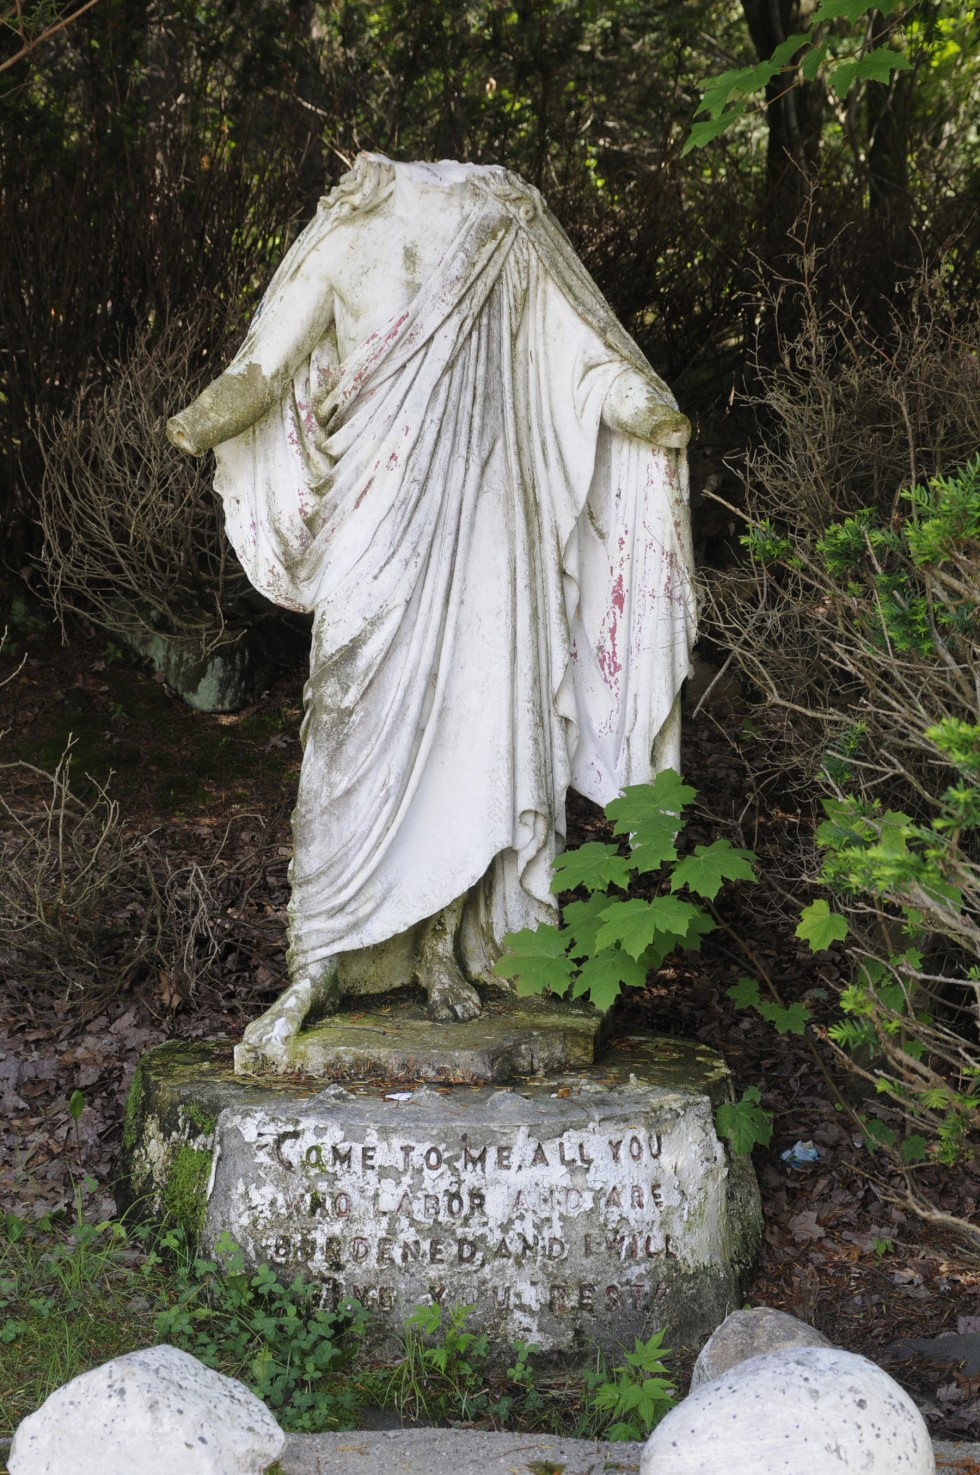 A statue of Jesus, was placed at the entrance to Holy Land. It has since been vandalized and is deteriorating.